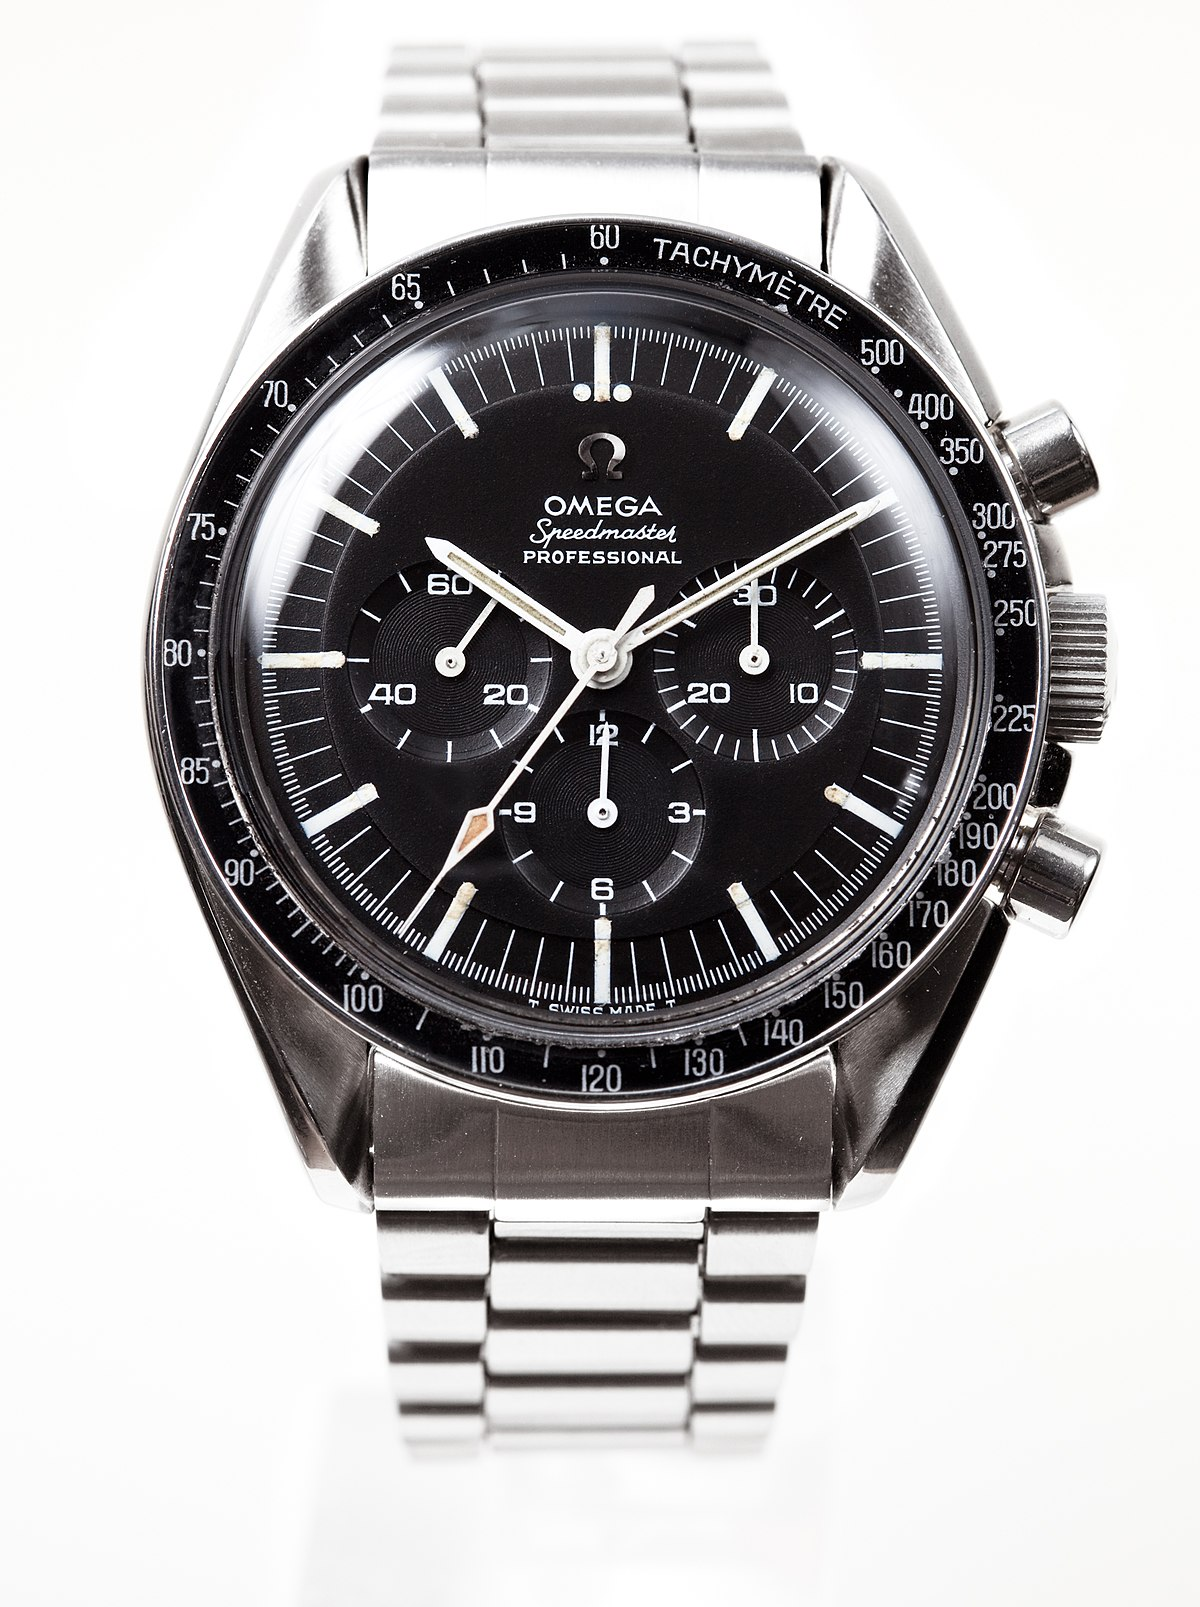 tuesday omega watches specs limited price speedmaster edition speedy